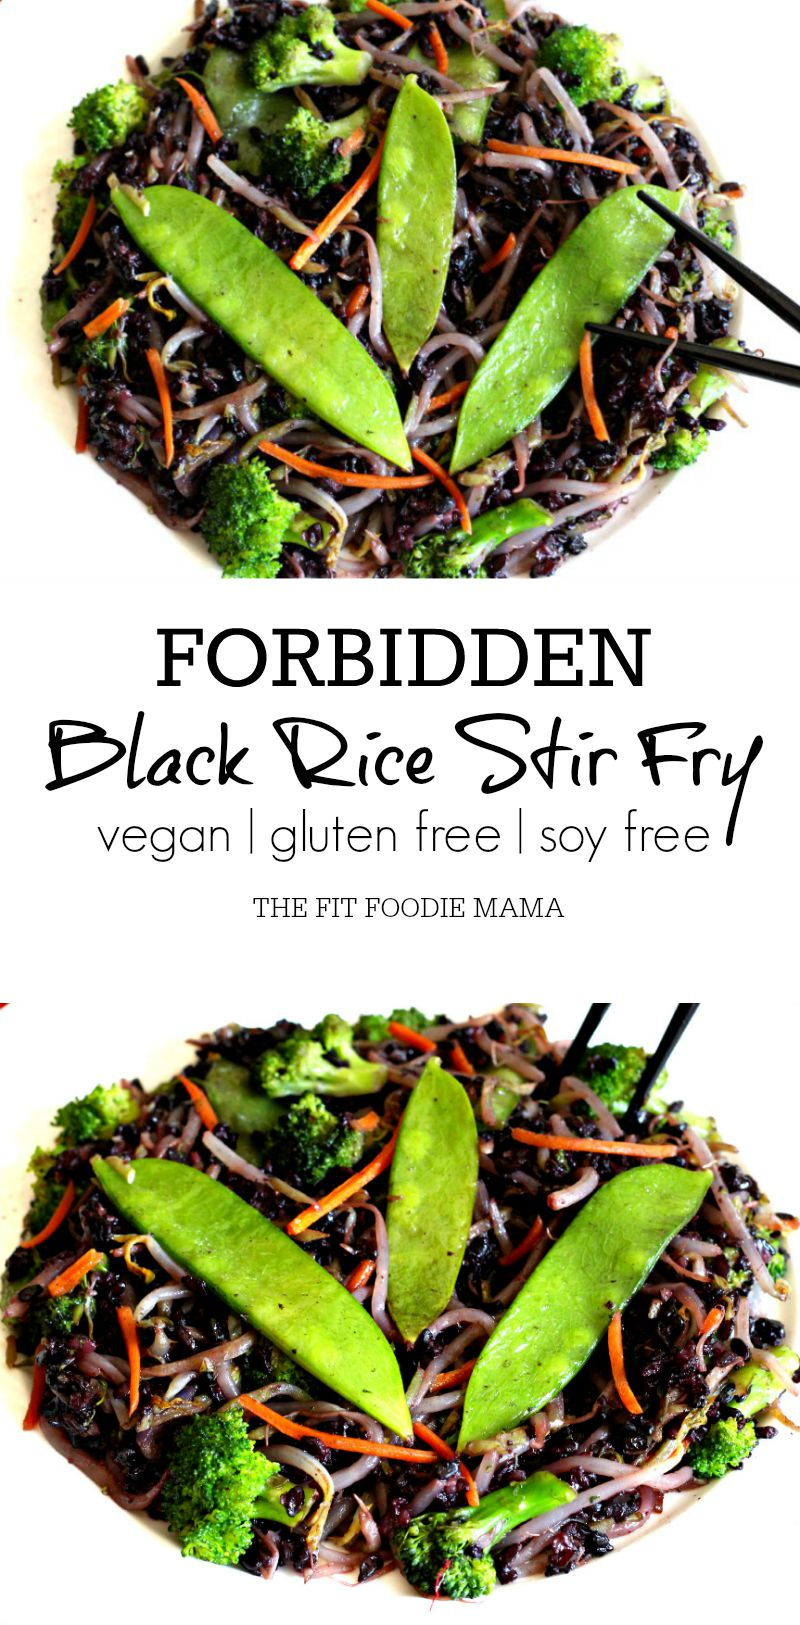 Fatigue Fighting Forbidden Black Rice Stir Fry { gluten free, vegan, soy free, low histamine, healthy, Meatless Monday} via @fitfoodiemama